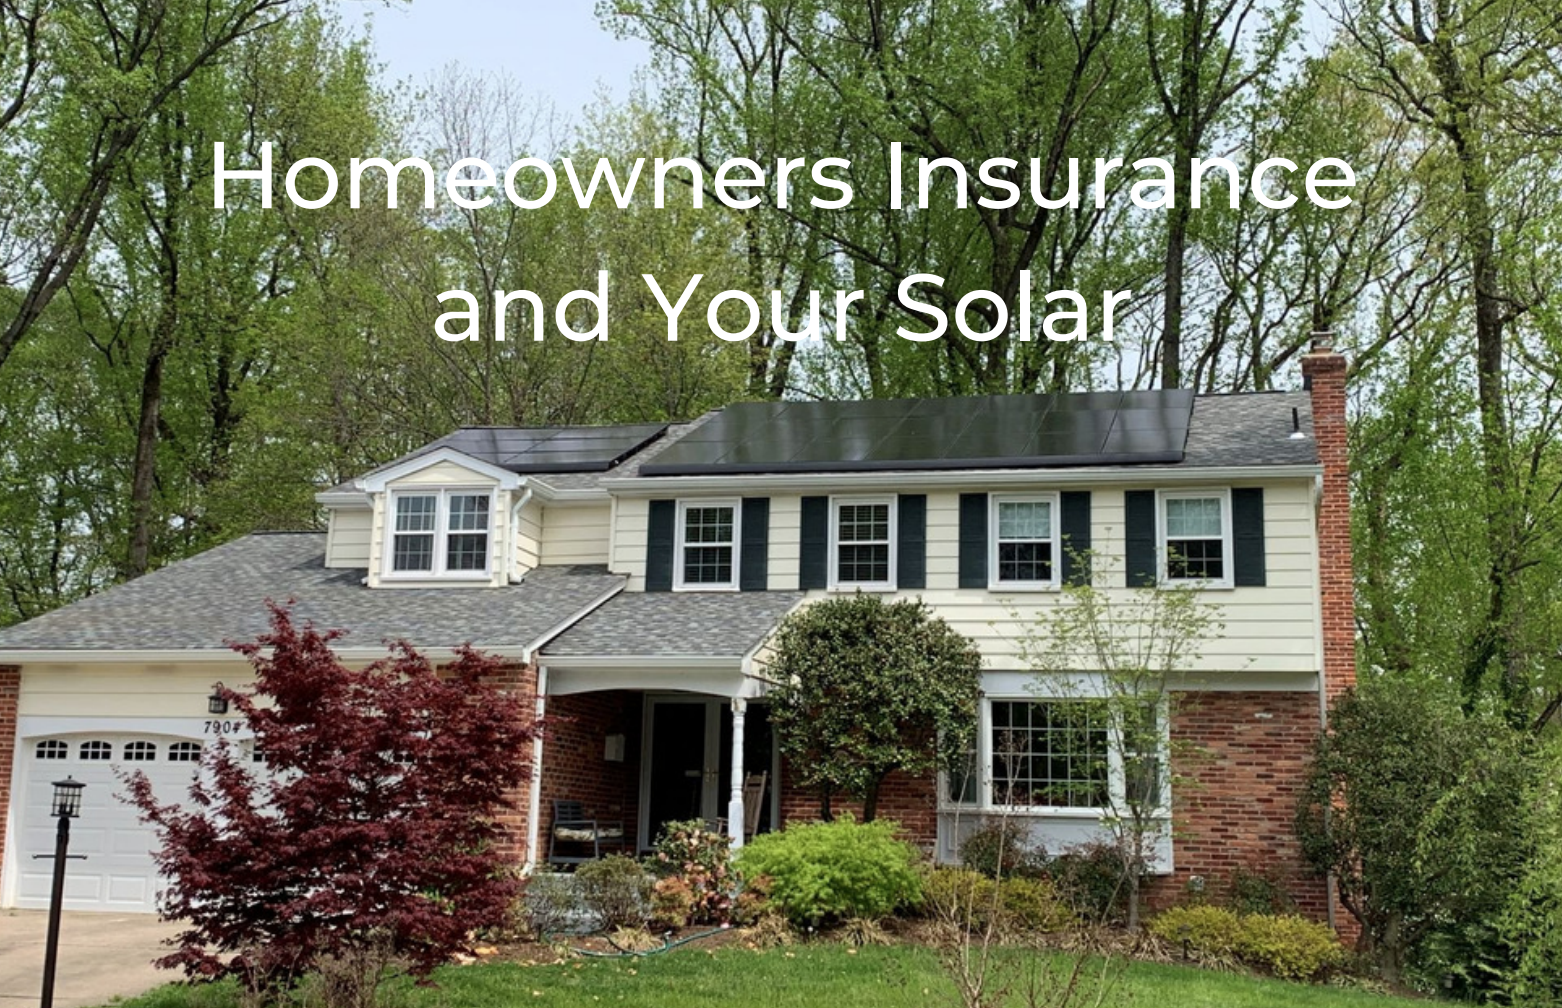 Homeowners Insurance and Your Solar System